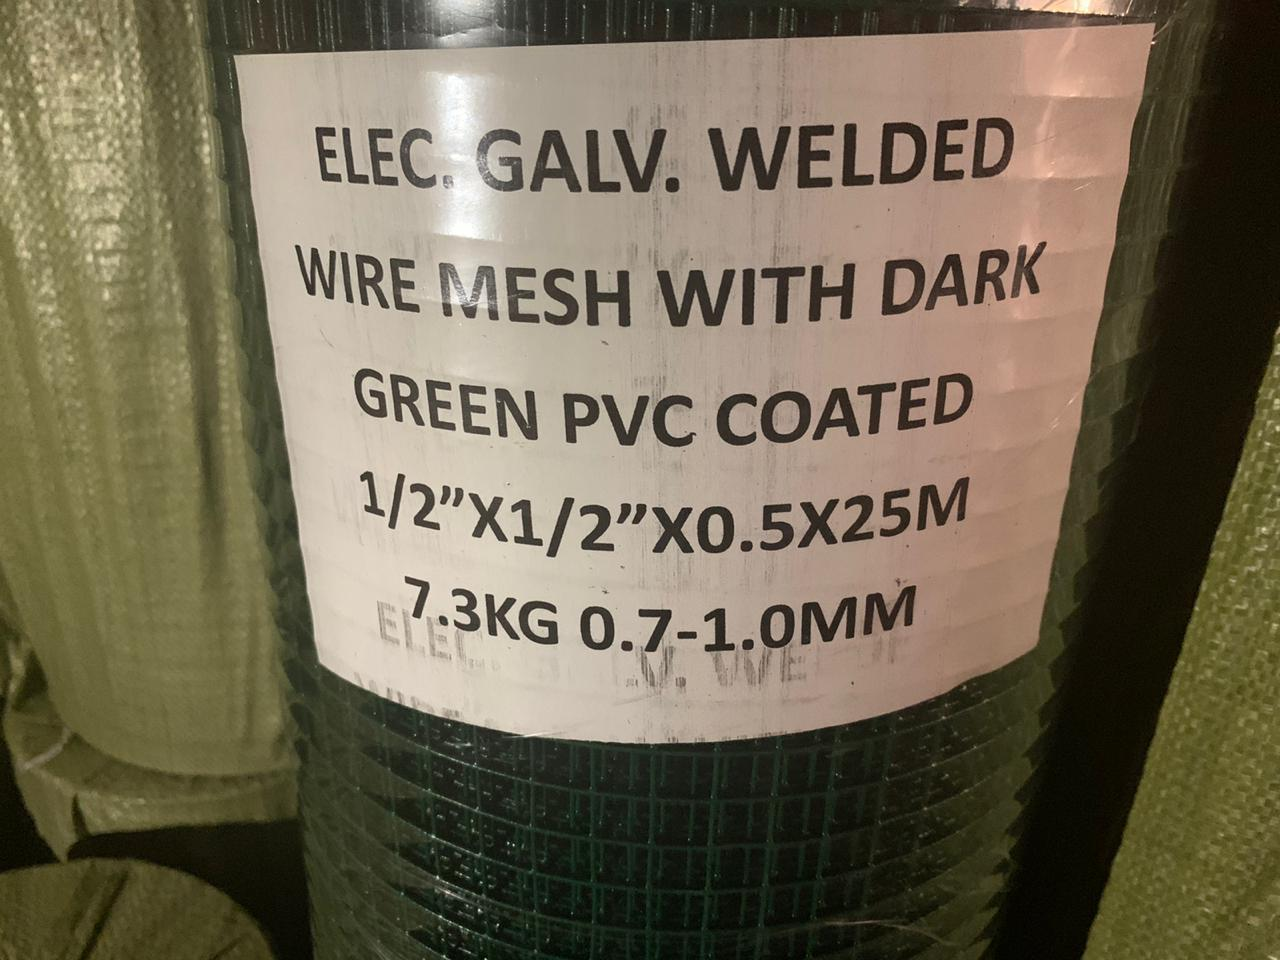 Roll welded wire mesh with dark green pvc coated 1/2″x1/2″x0.5x25m 7.3kg 0.7-1.0mm